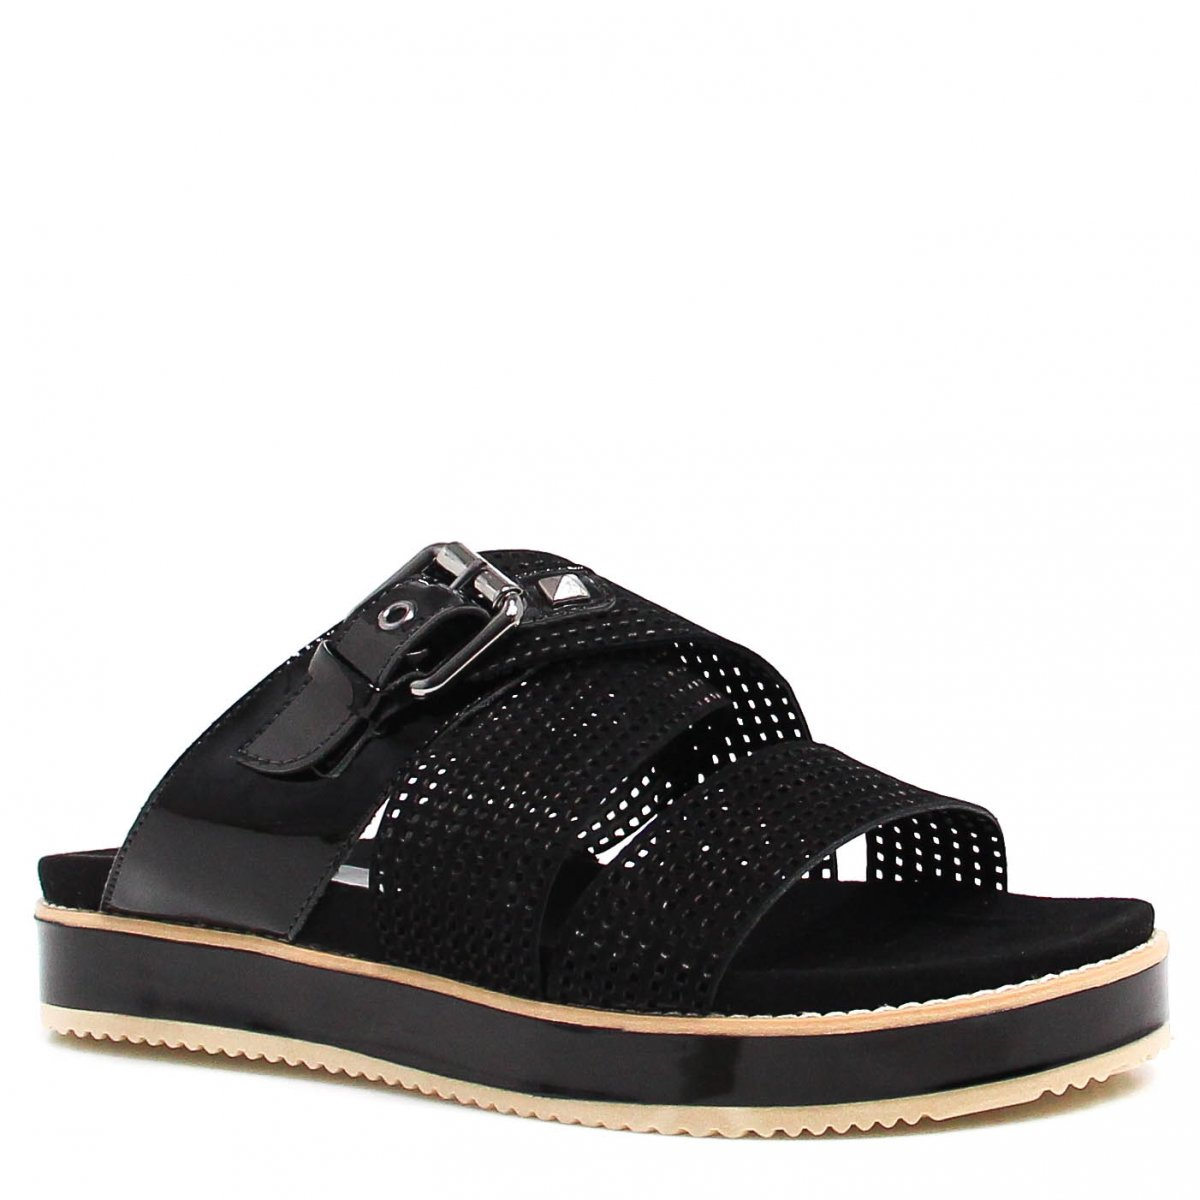 Tamanco Zariff Shoes Birken Fivela Preto